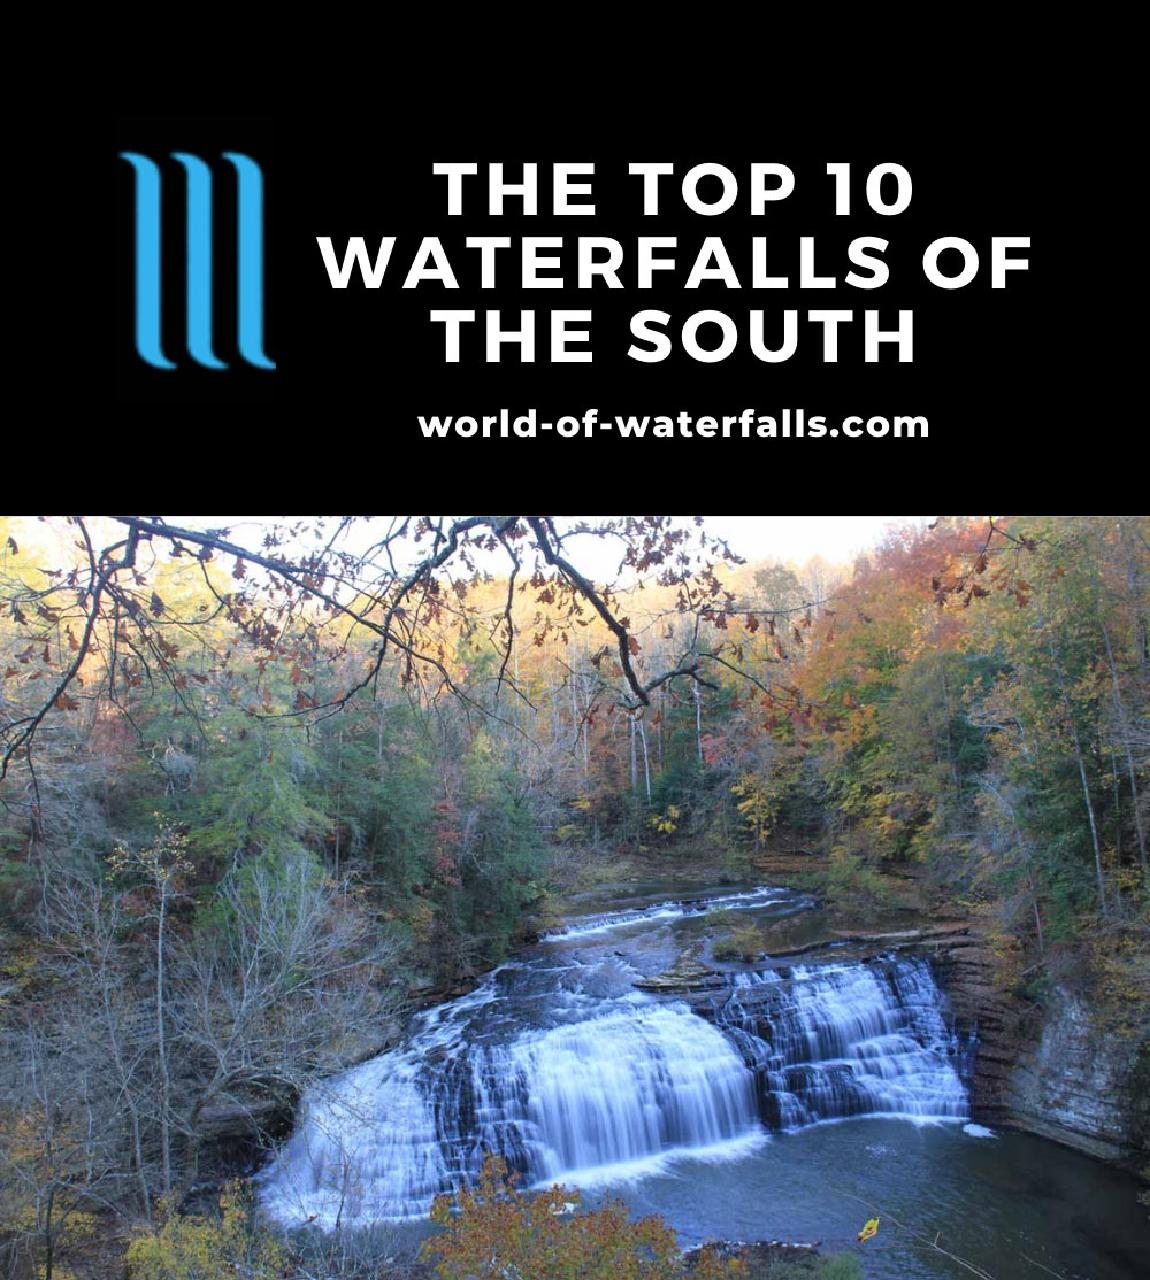 The Top 10 Waterfalls of the South